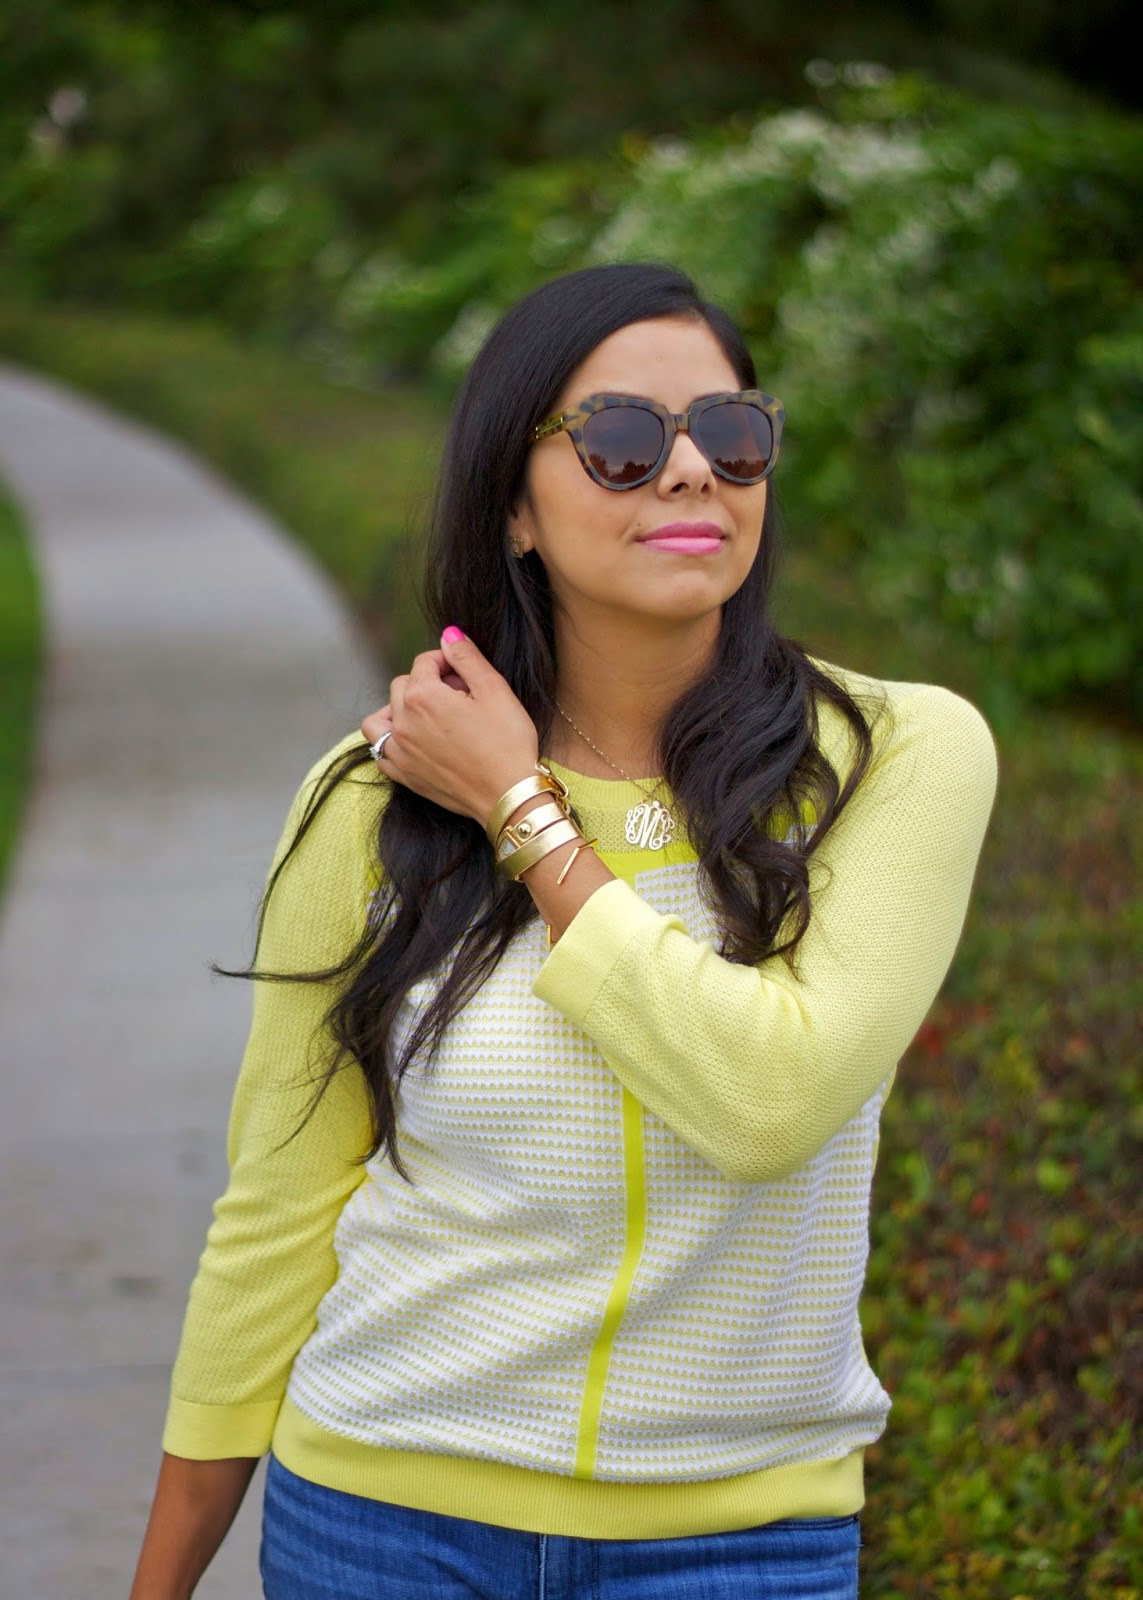 la mer gold wrap bracelet, blogger fashion in yellow, pop of yellow in outfit, gold accessories in an outfit